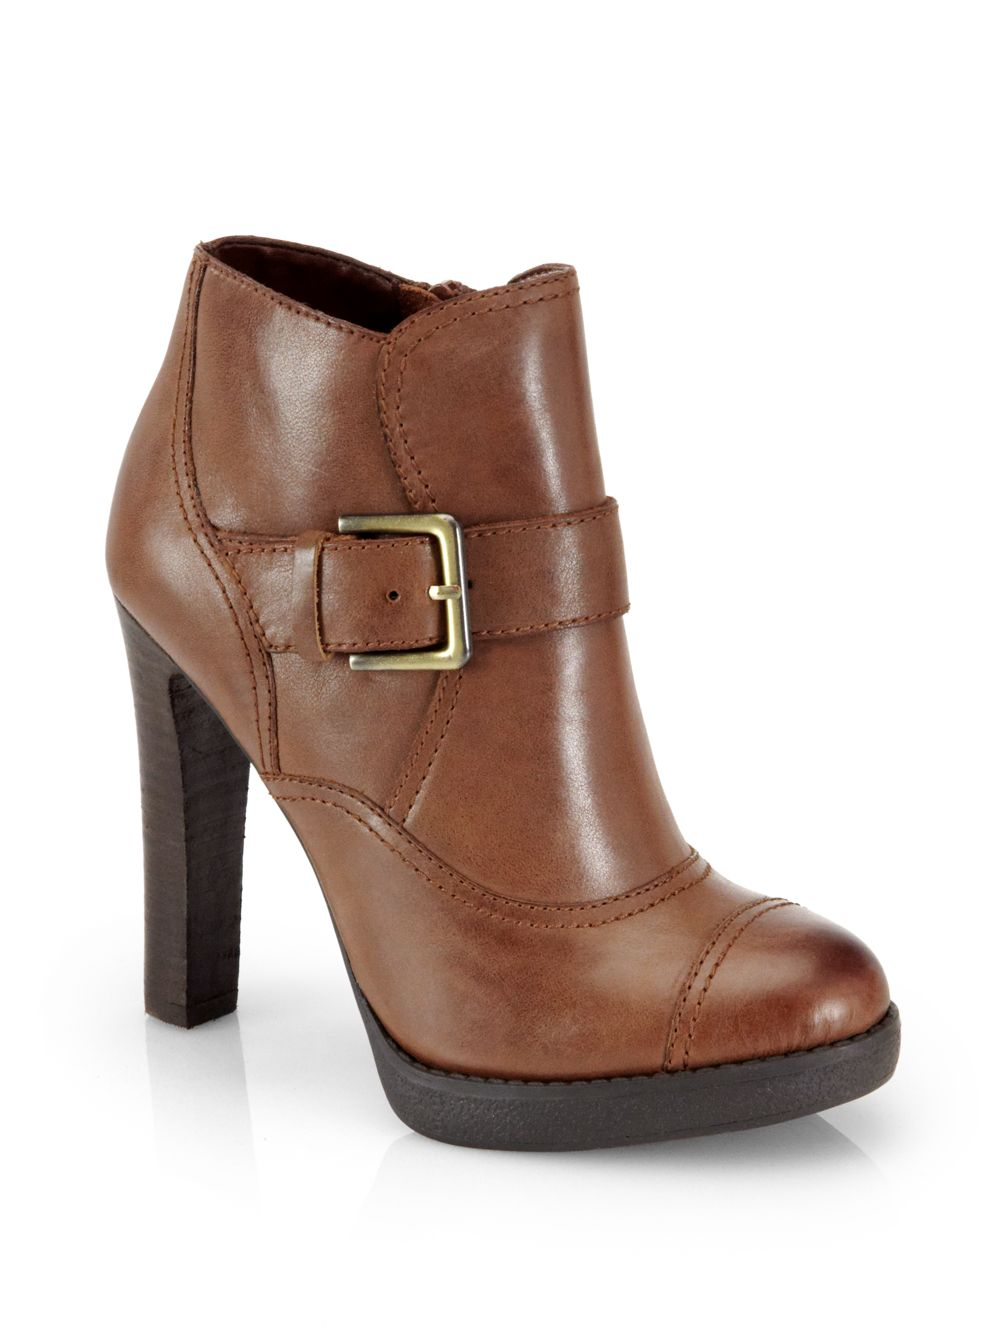 luxury rebel pandora platform ankle boots in brown lyst